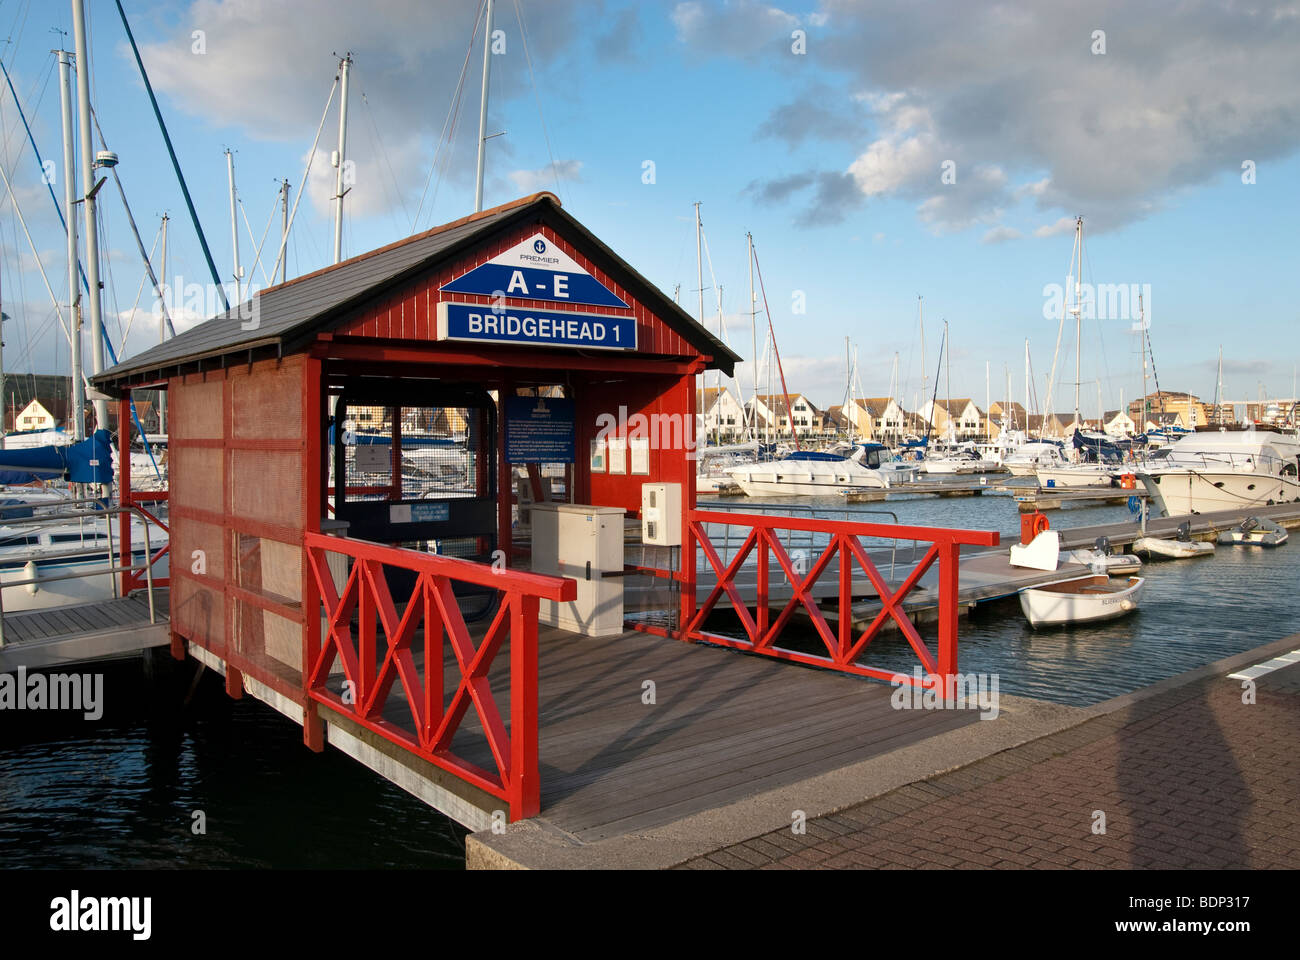 Bridgehead gate to jetty at Port Solent near Portsmouth - Stock Image